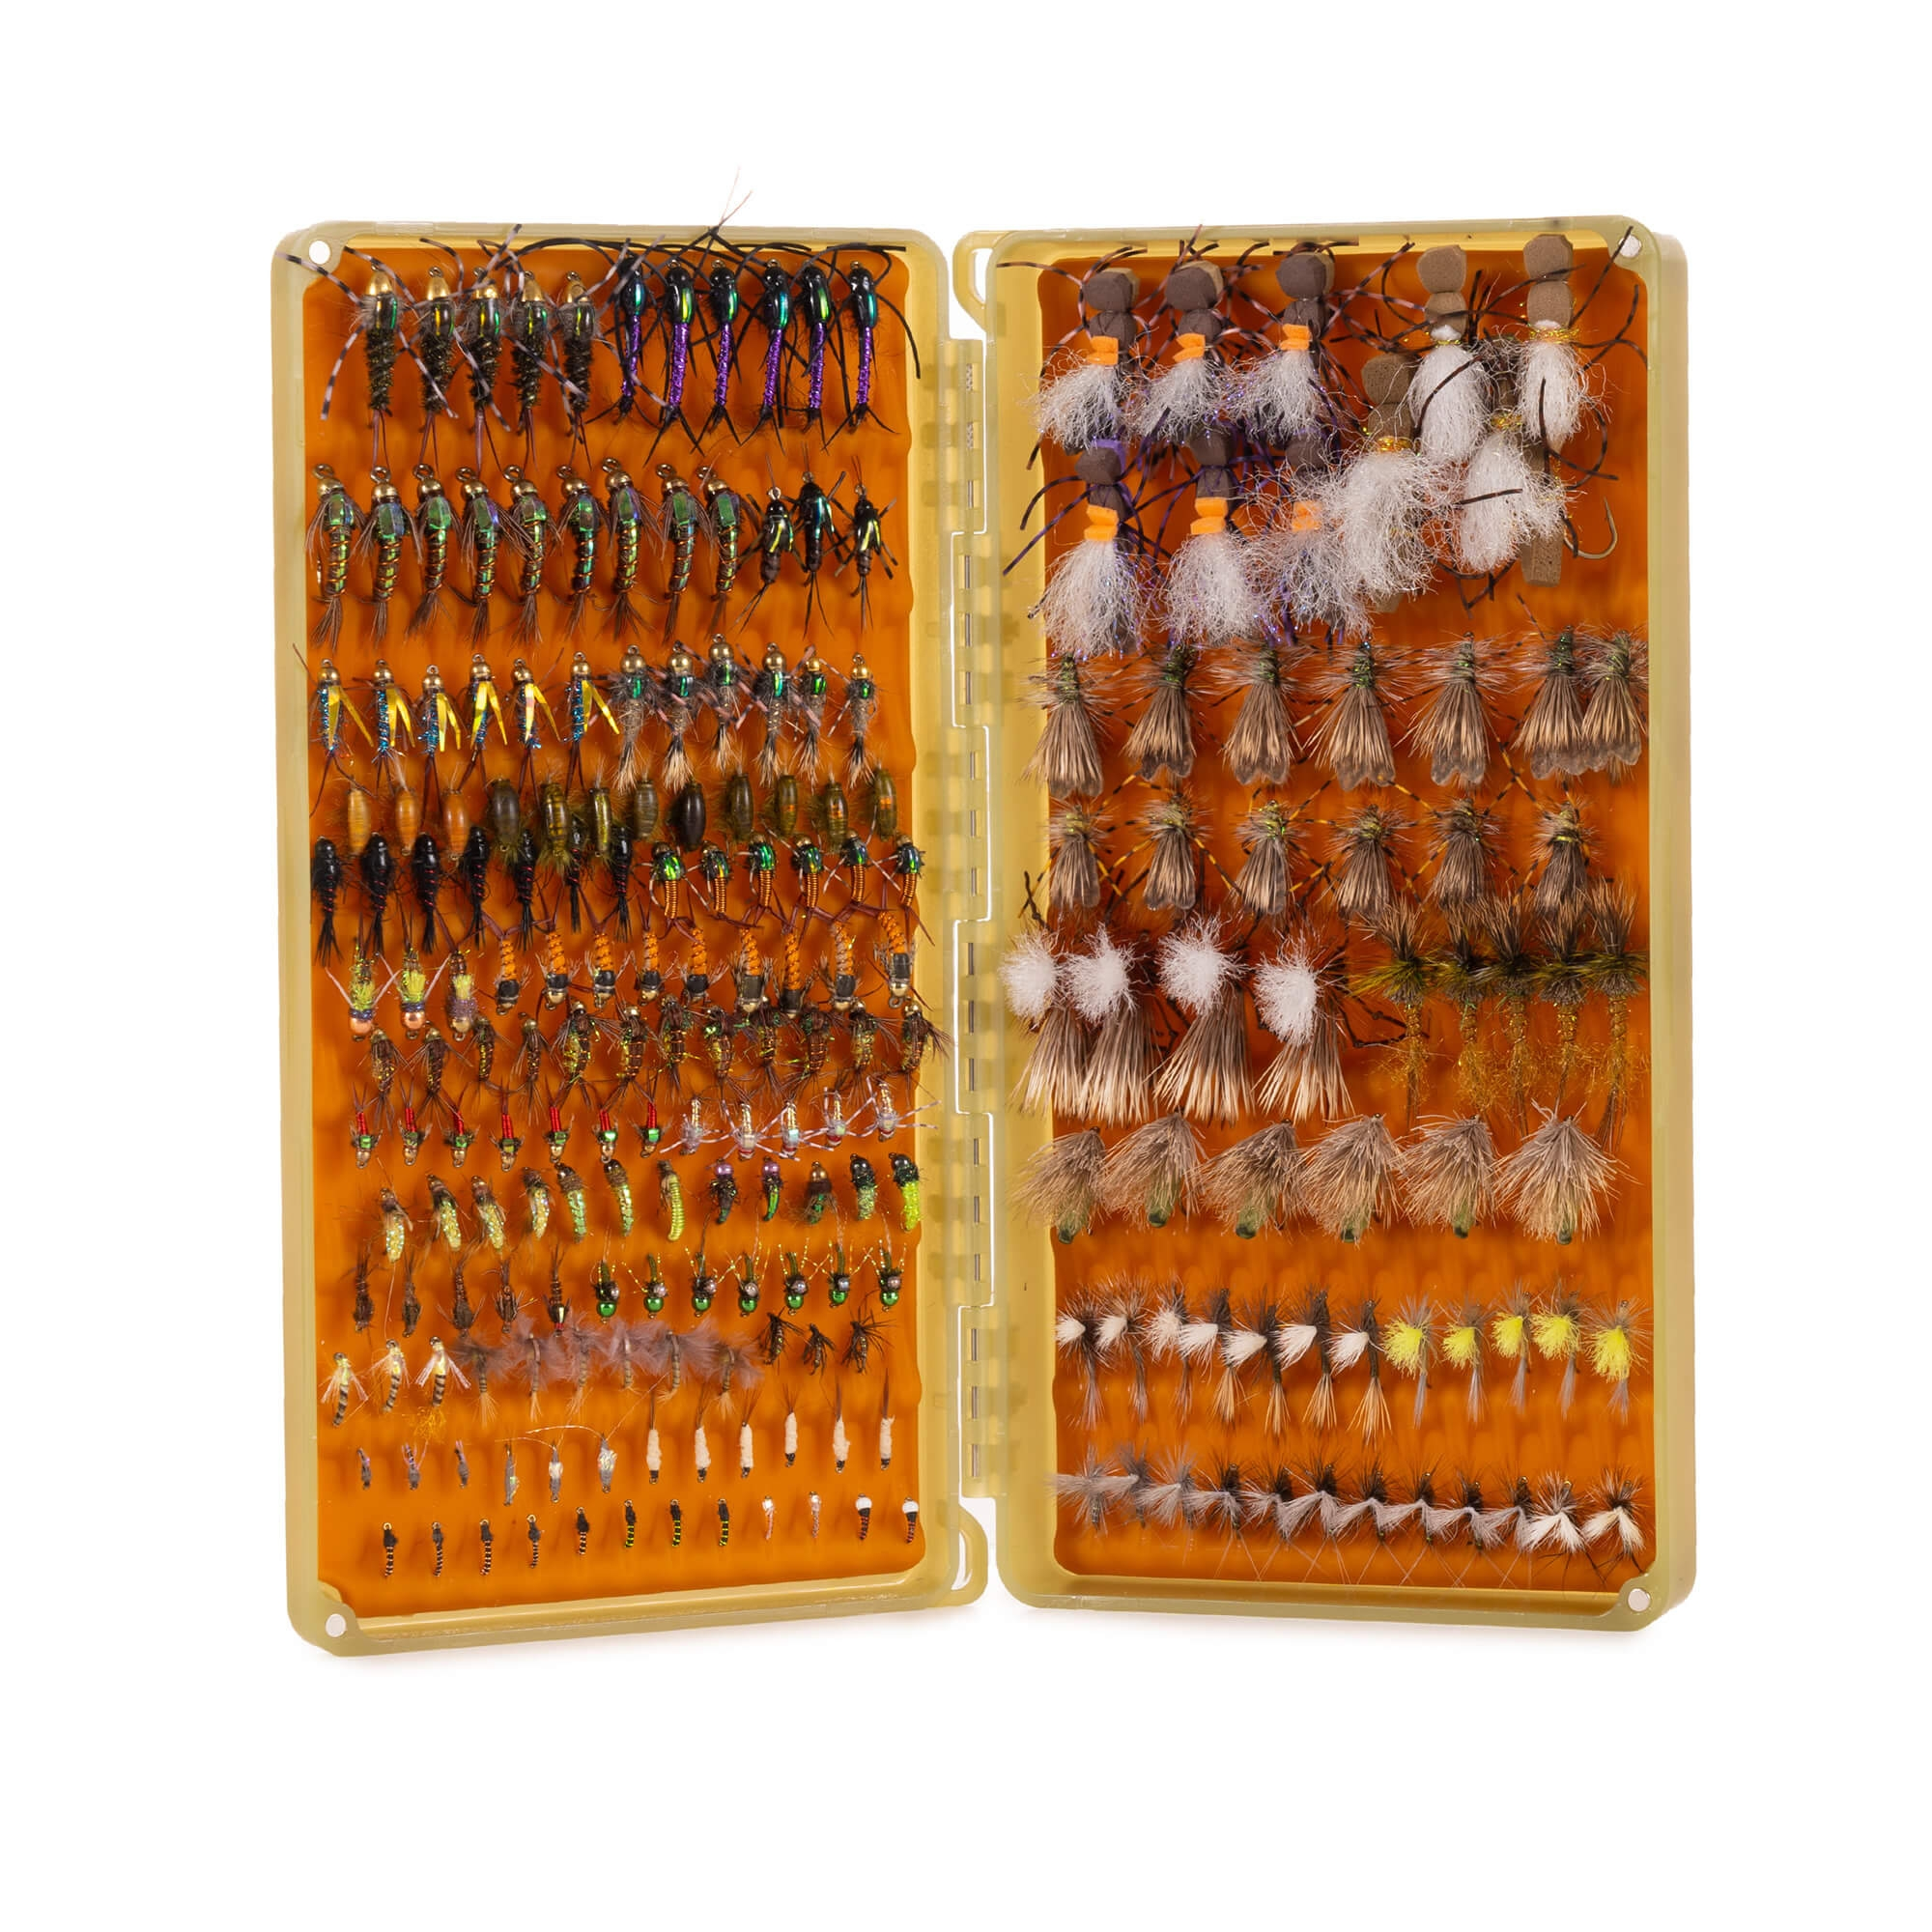 Tacky Catch All Fly Box